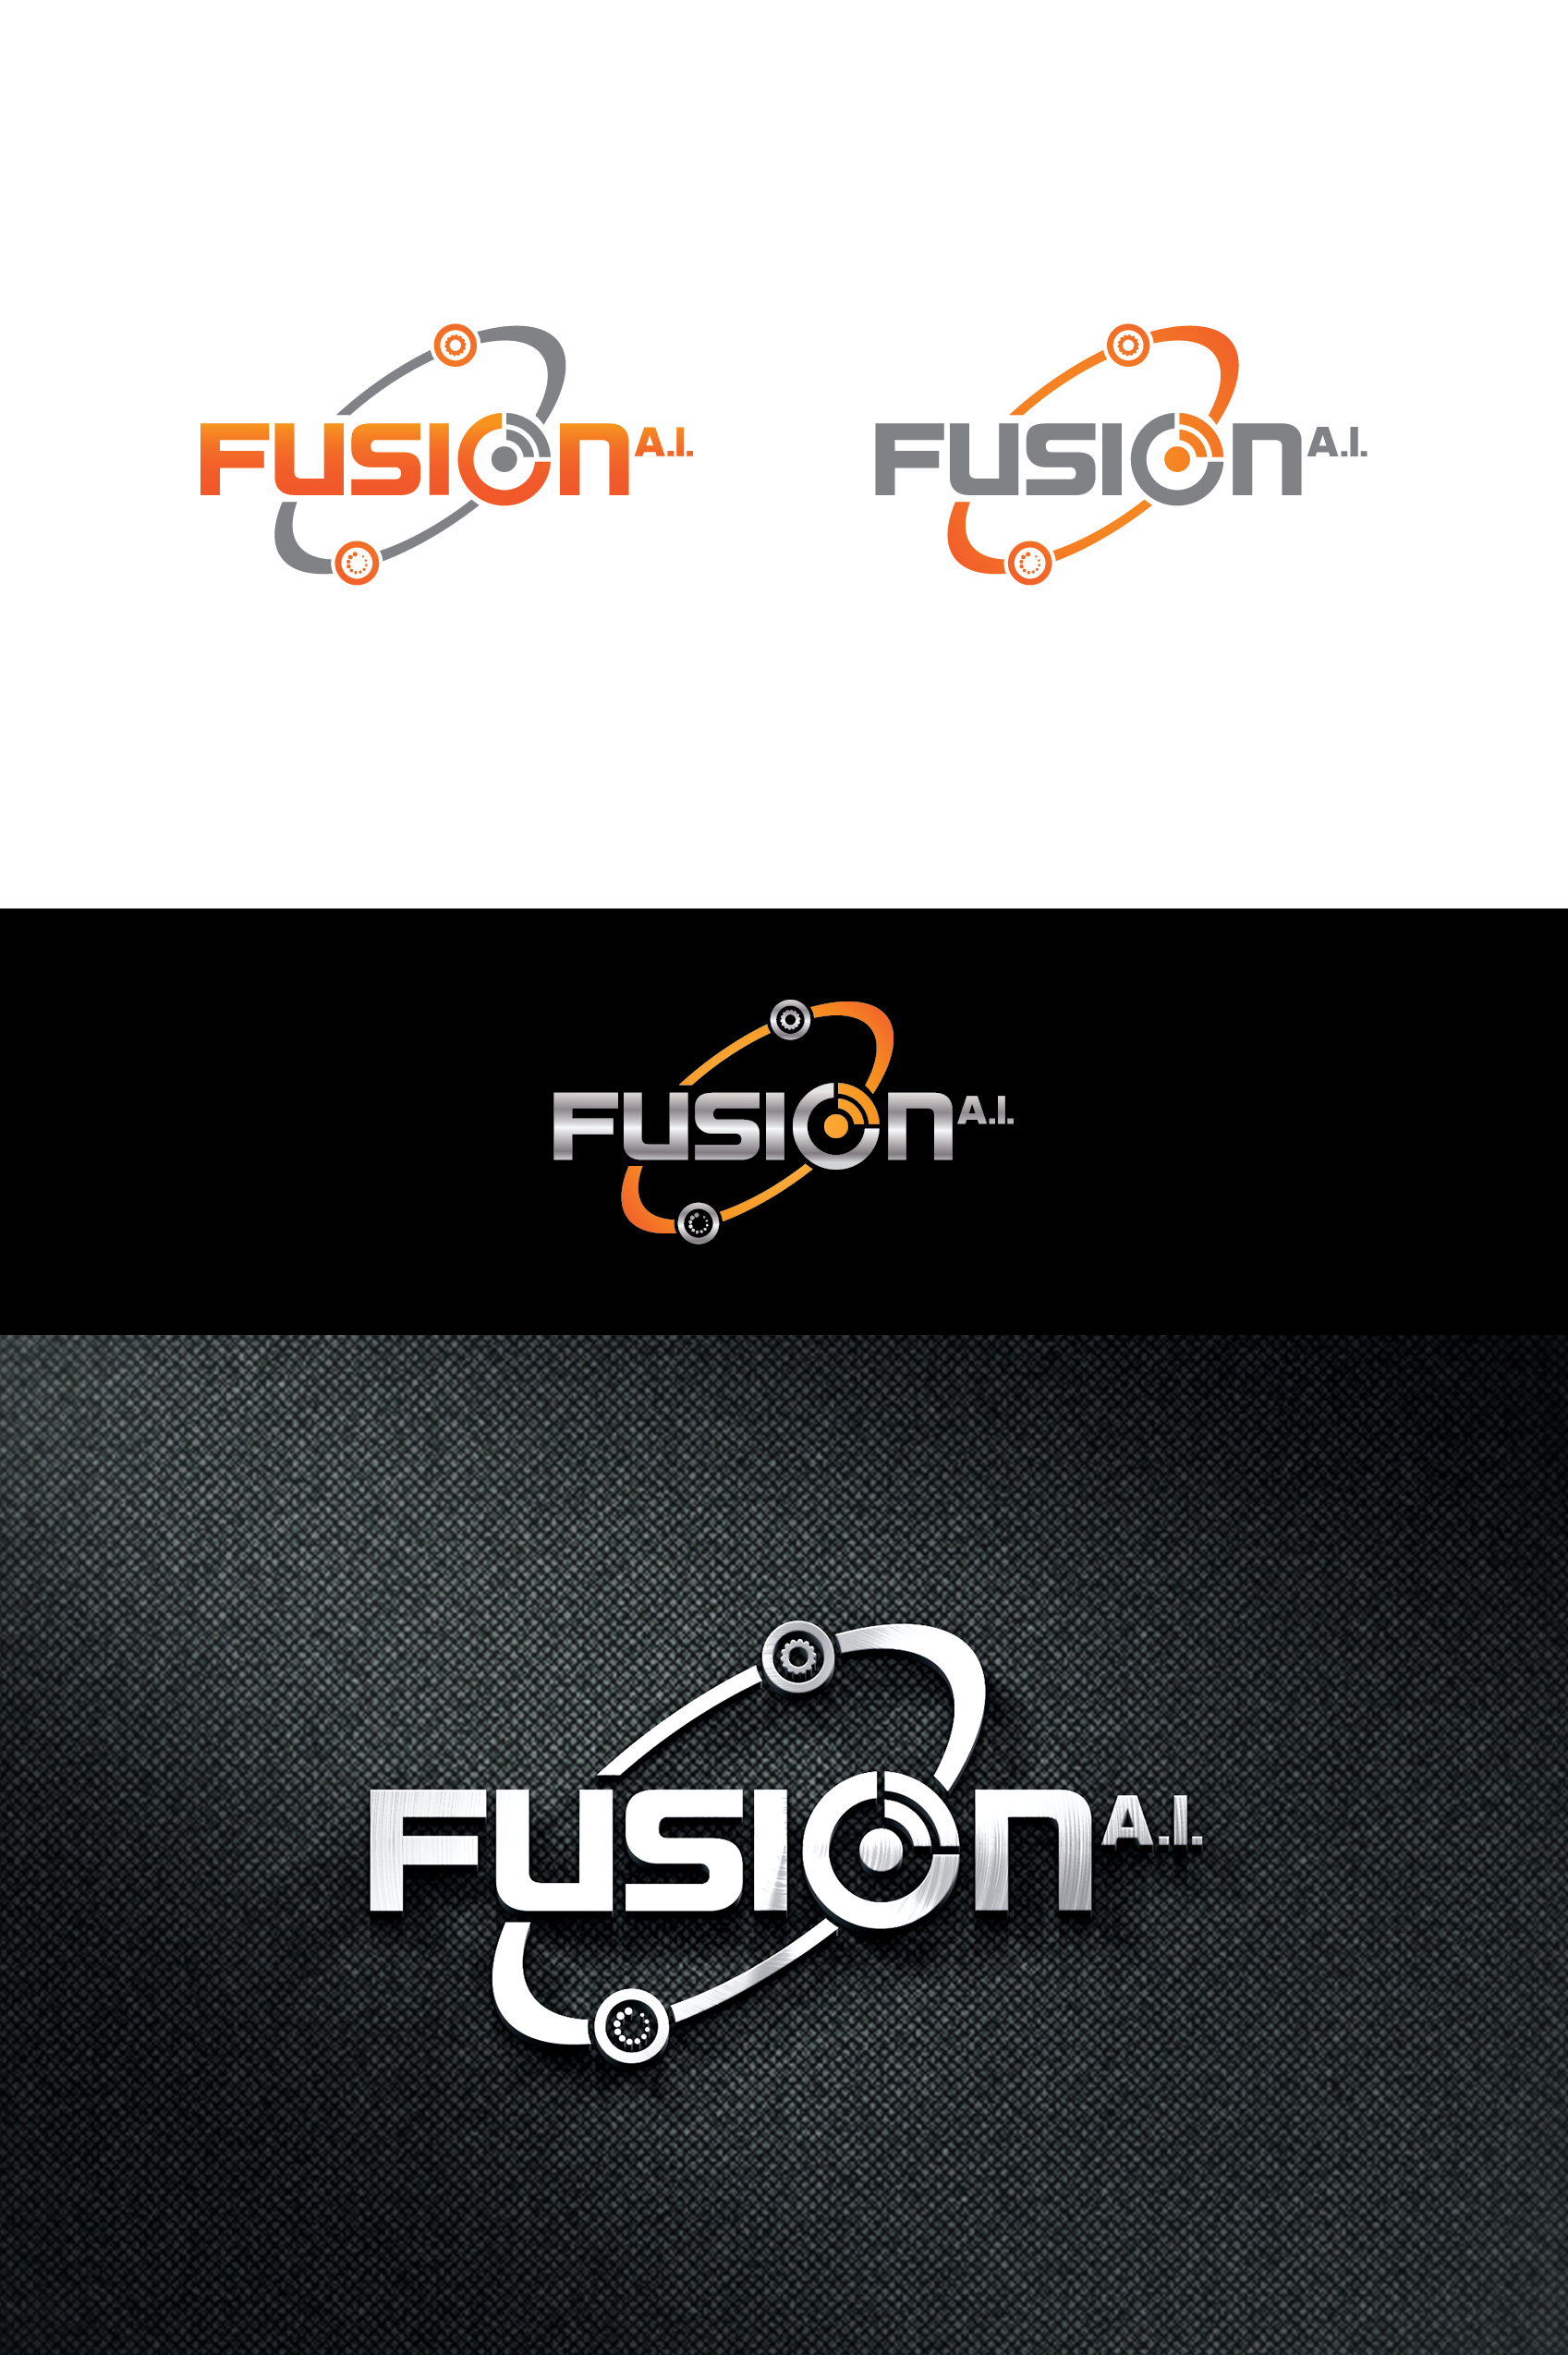 Bring your love of Math, Science & Technology to create the image of Fusion Advanced Intelligence